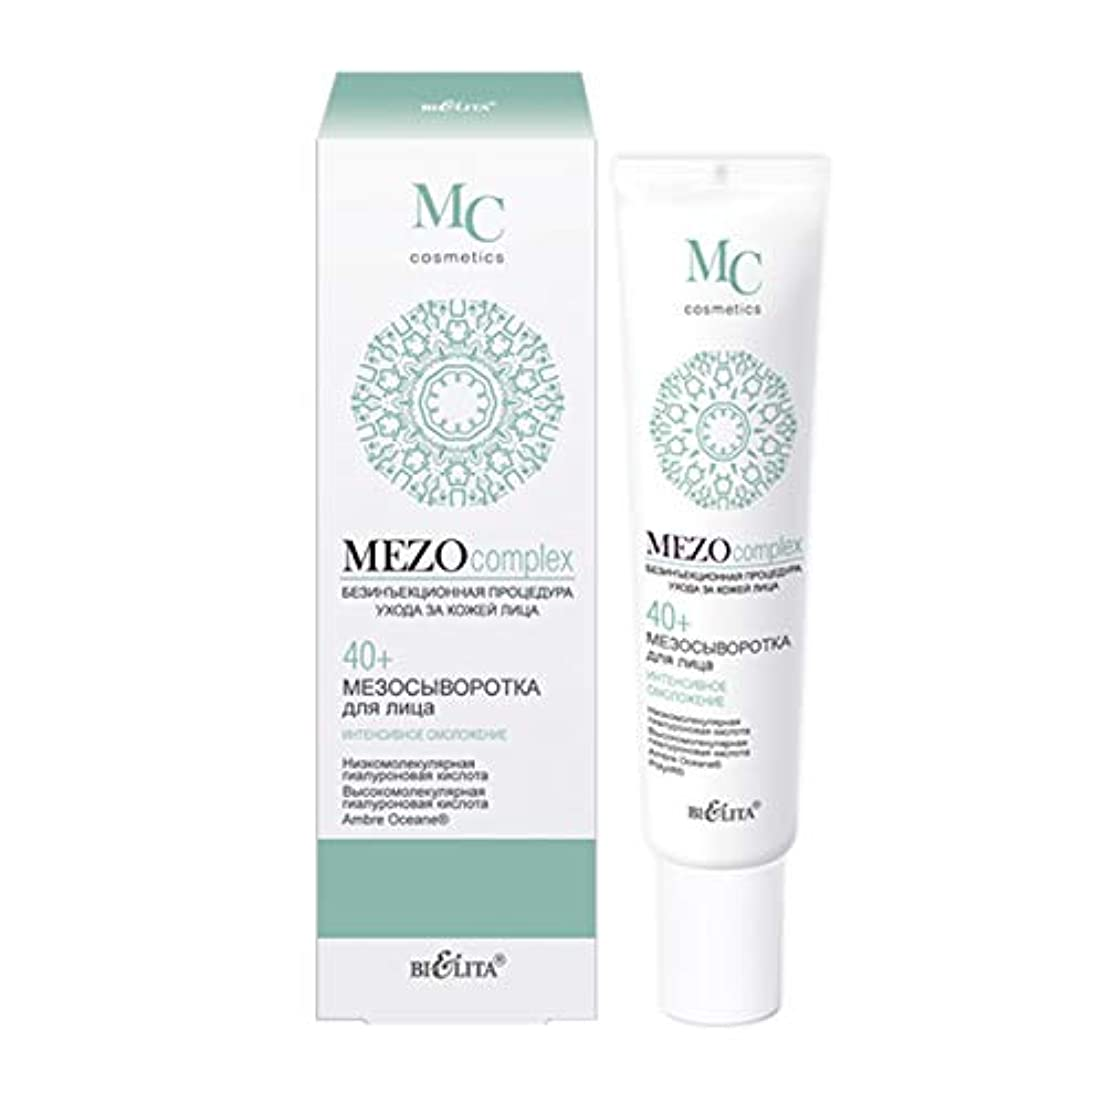 重力日記道Mezo complex Serum Intensive Rejuvenation 40+ | Non-injection facial skin care procedure | Ambre Oceane | Polylift...